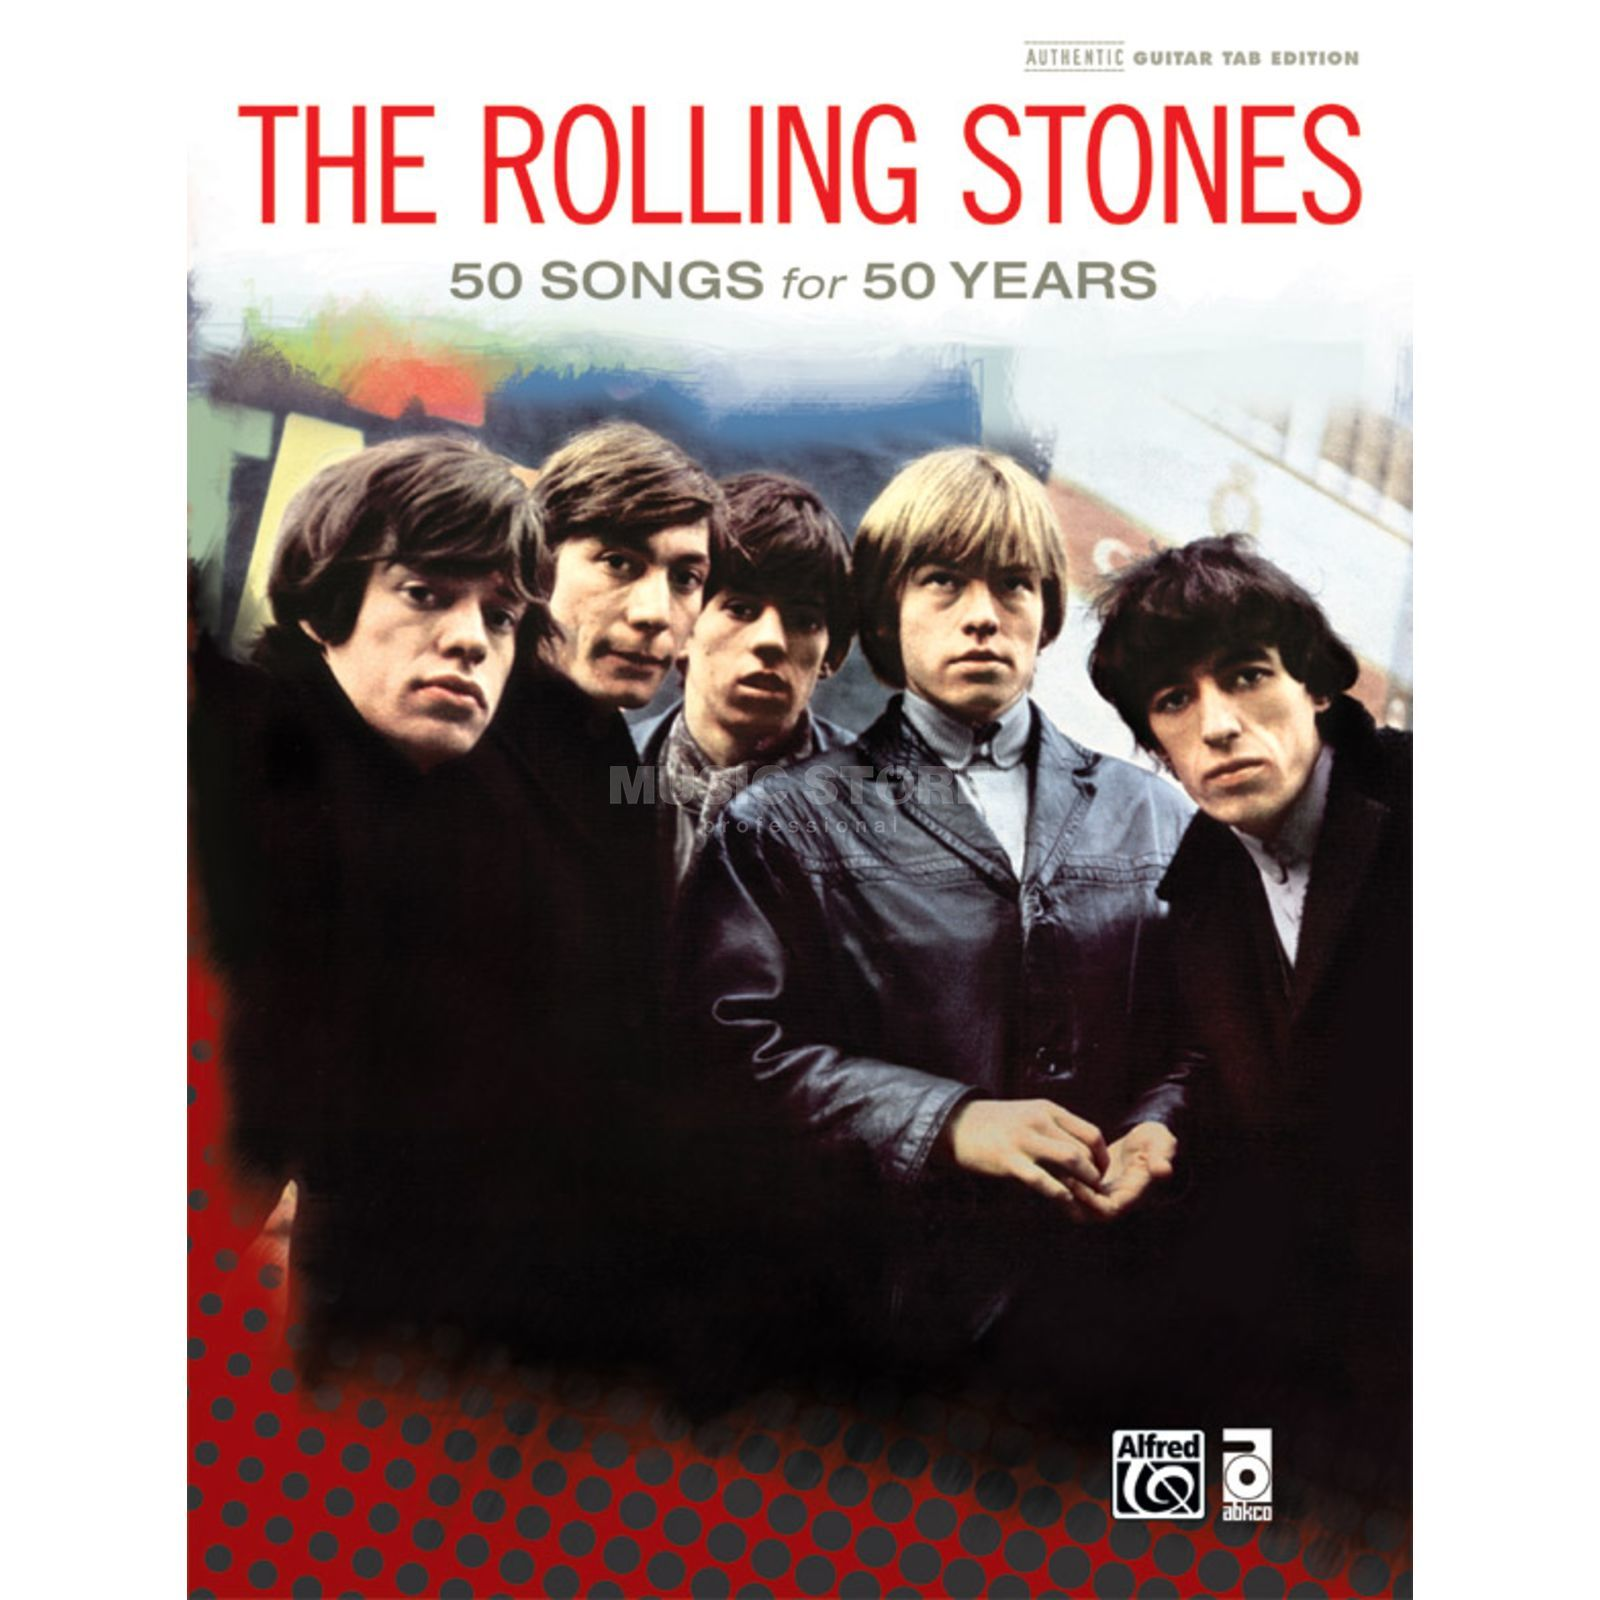 Alfred Music The Rolling Stones: 50 Songs for 50 Years TAB Produktbild